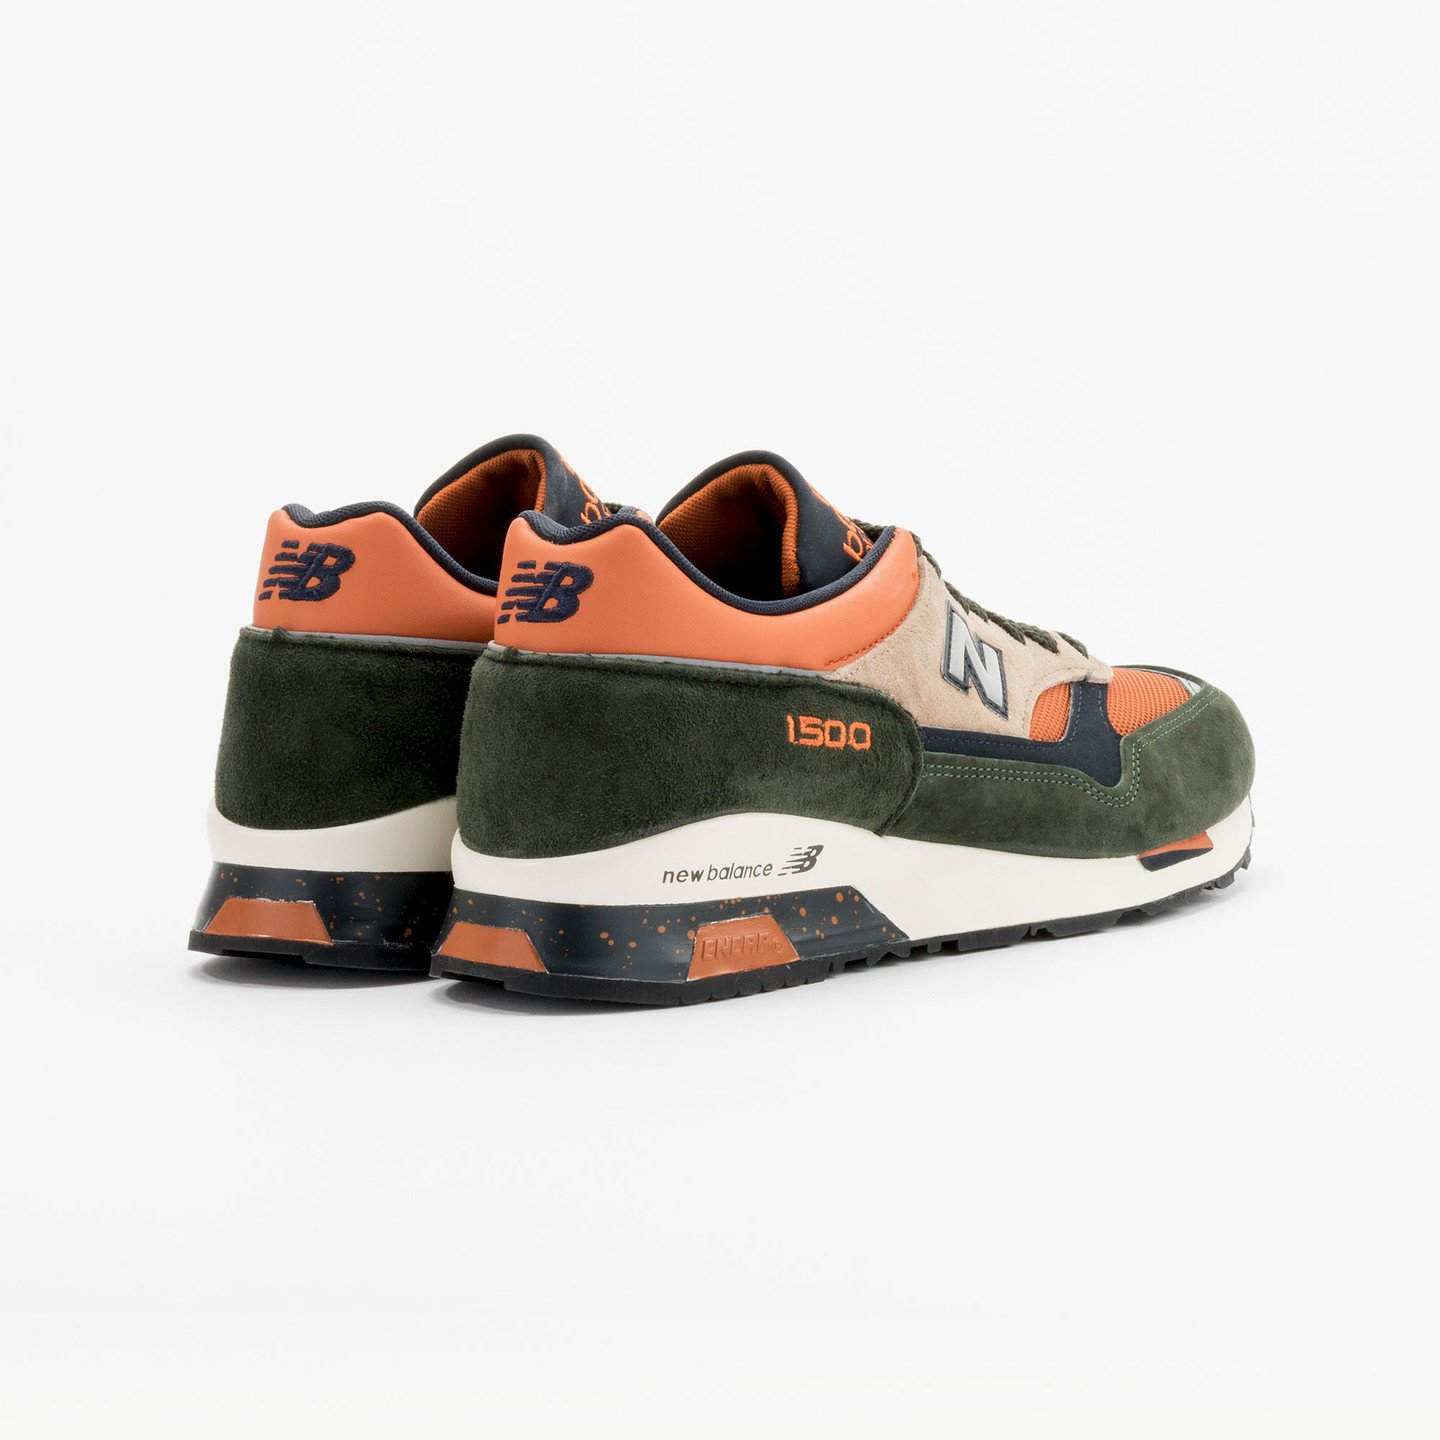 New Balance M1500 RO - Made in England Green / Orange M1500RO-44